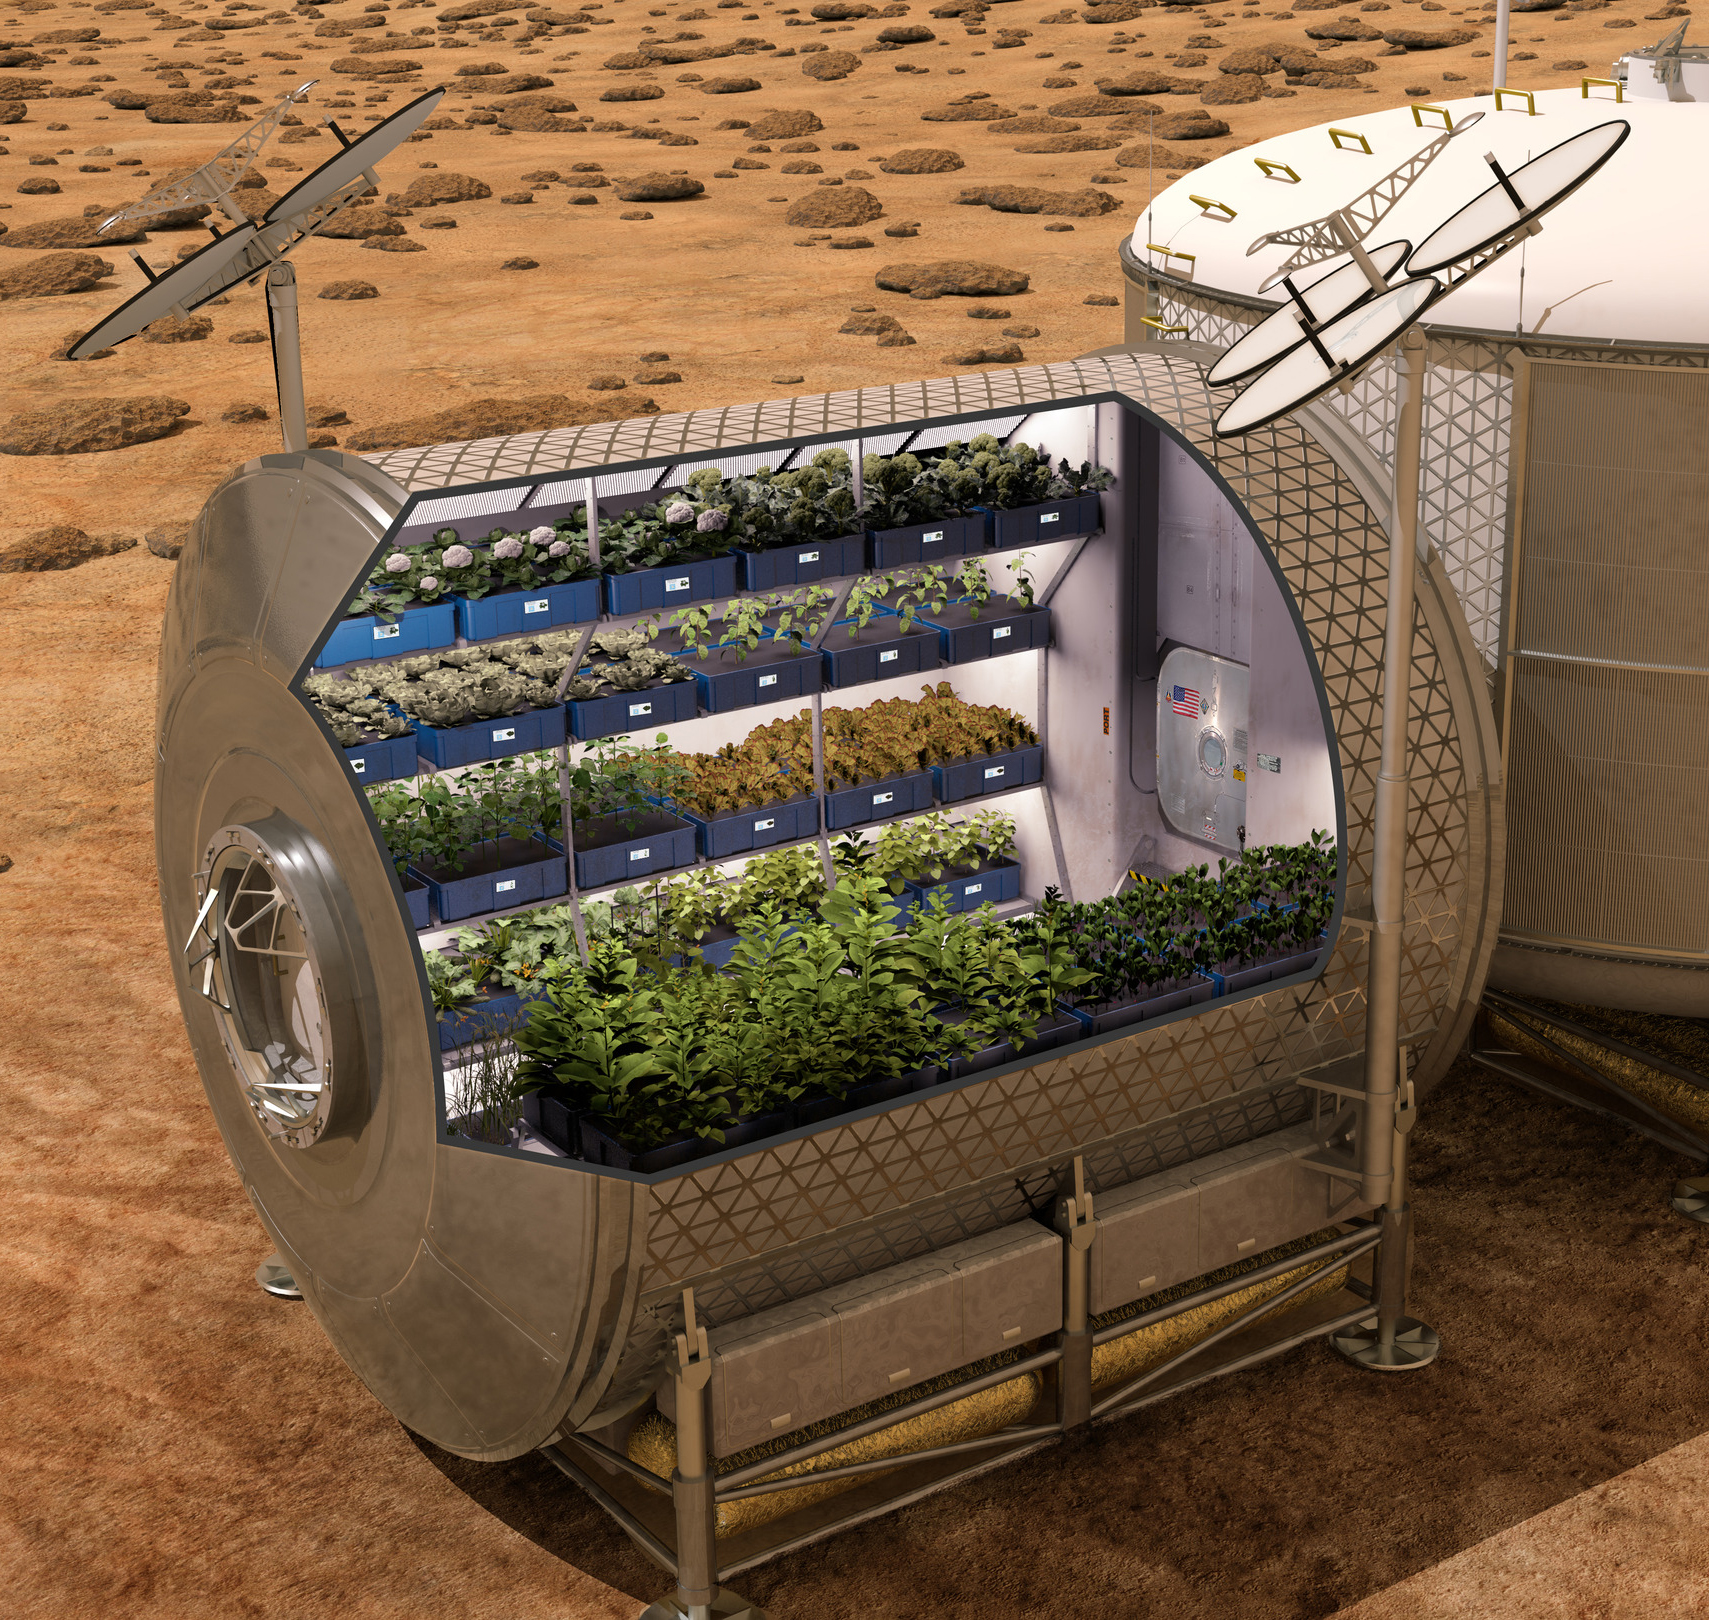 Farming in Space | Successful Farming